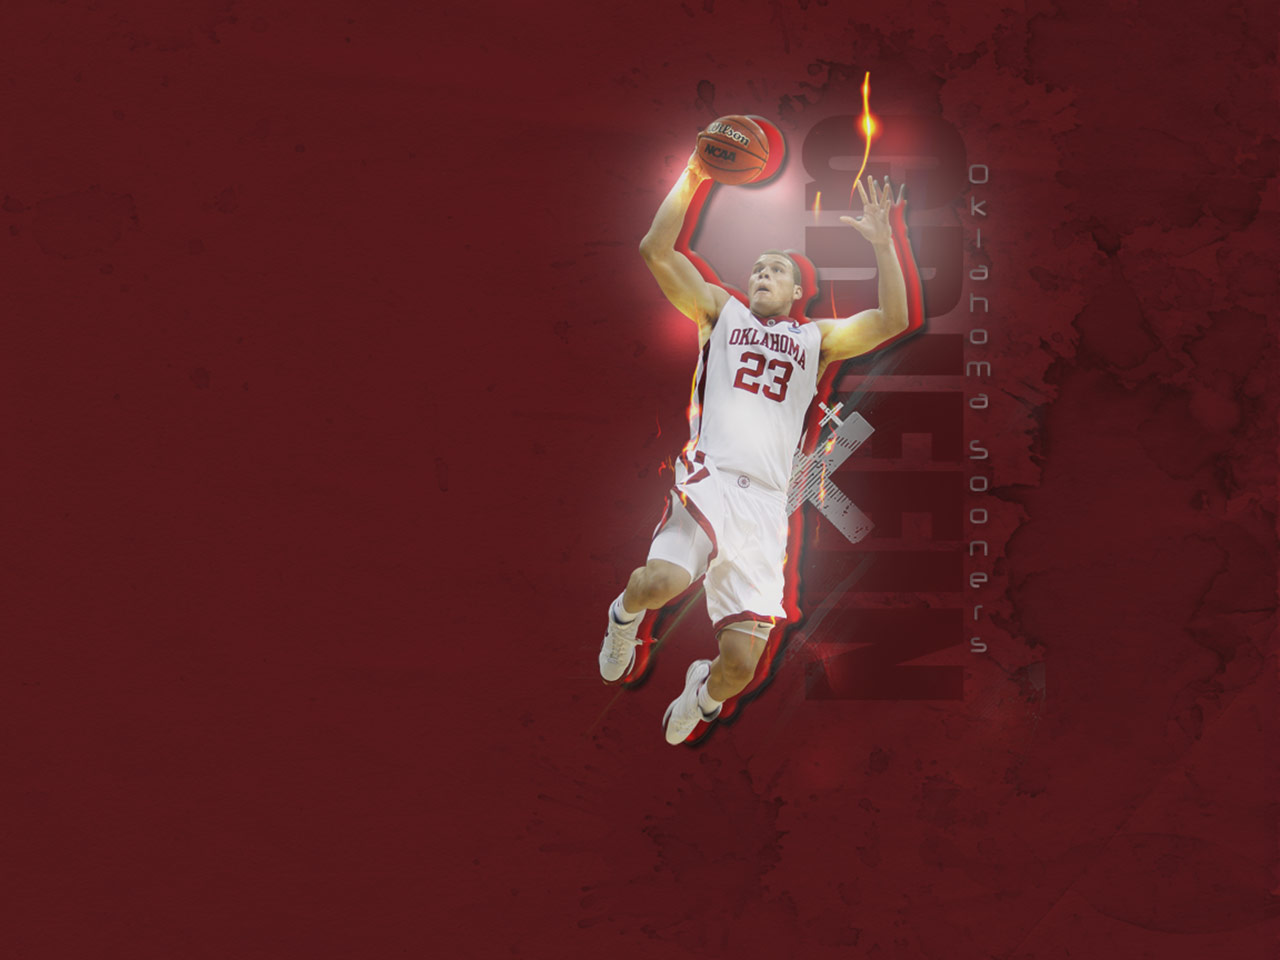 Blake Griffin Oklahoma Sooners Wallpaper 1280215960 102678 1280x960